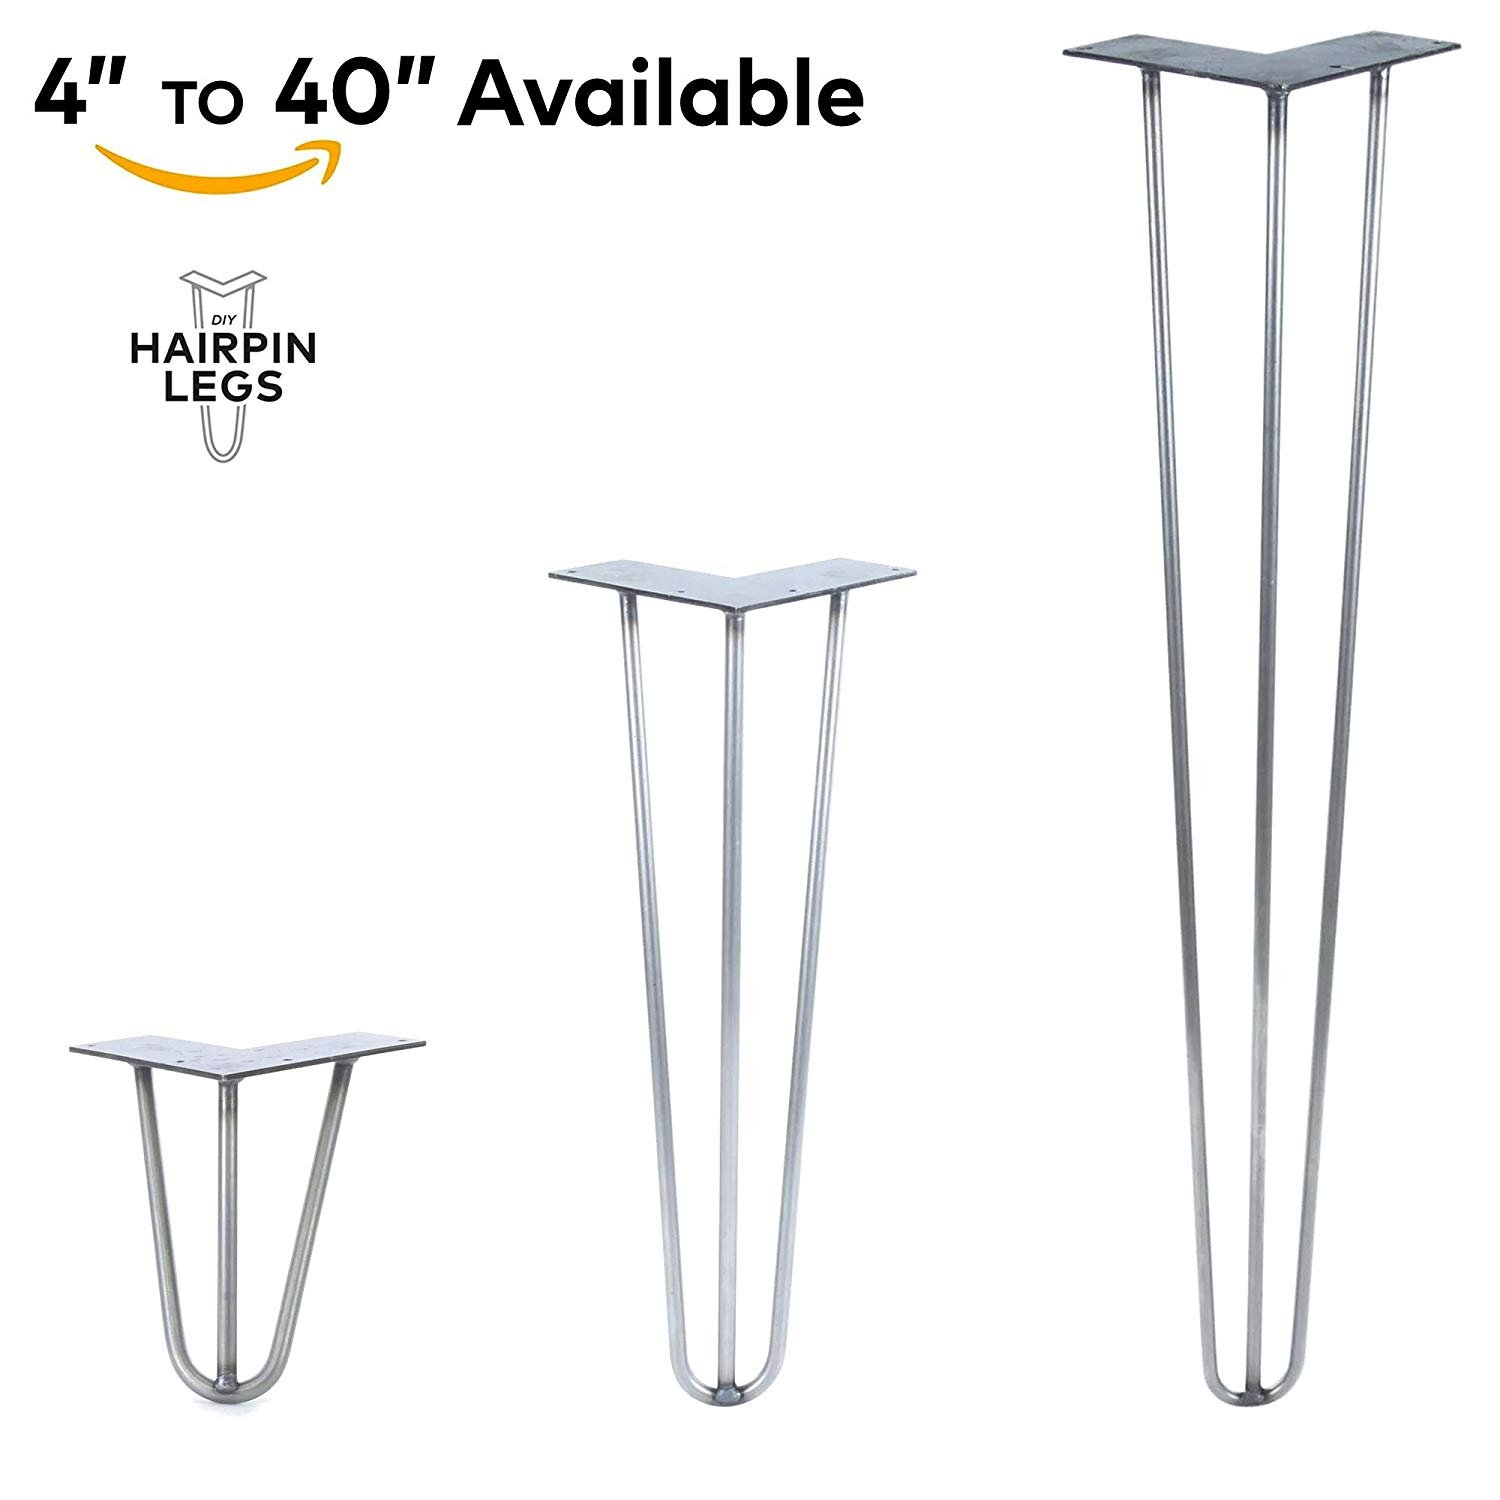 3 Rod Hairpin Legs - Made in The USA - Commerical Grade - Each Leg Sold Separately (27'' Height x 1/2'' Diameter, Jet Black Satin)